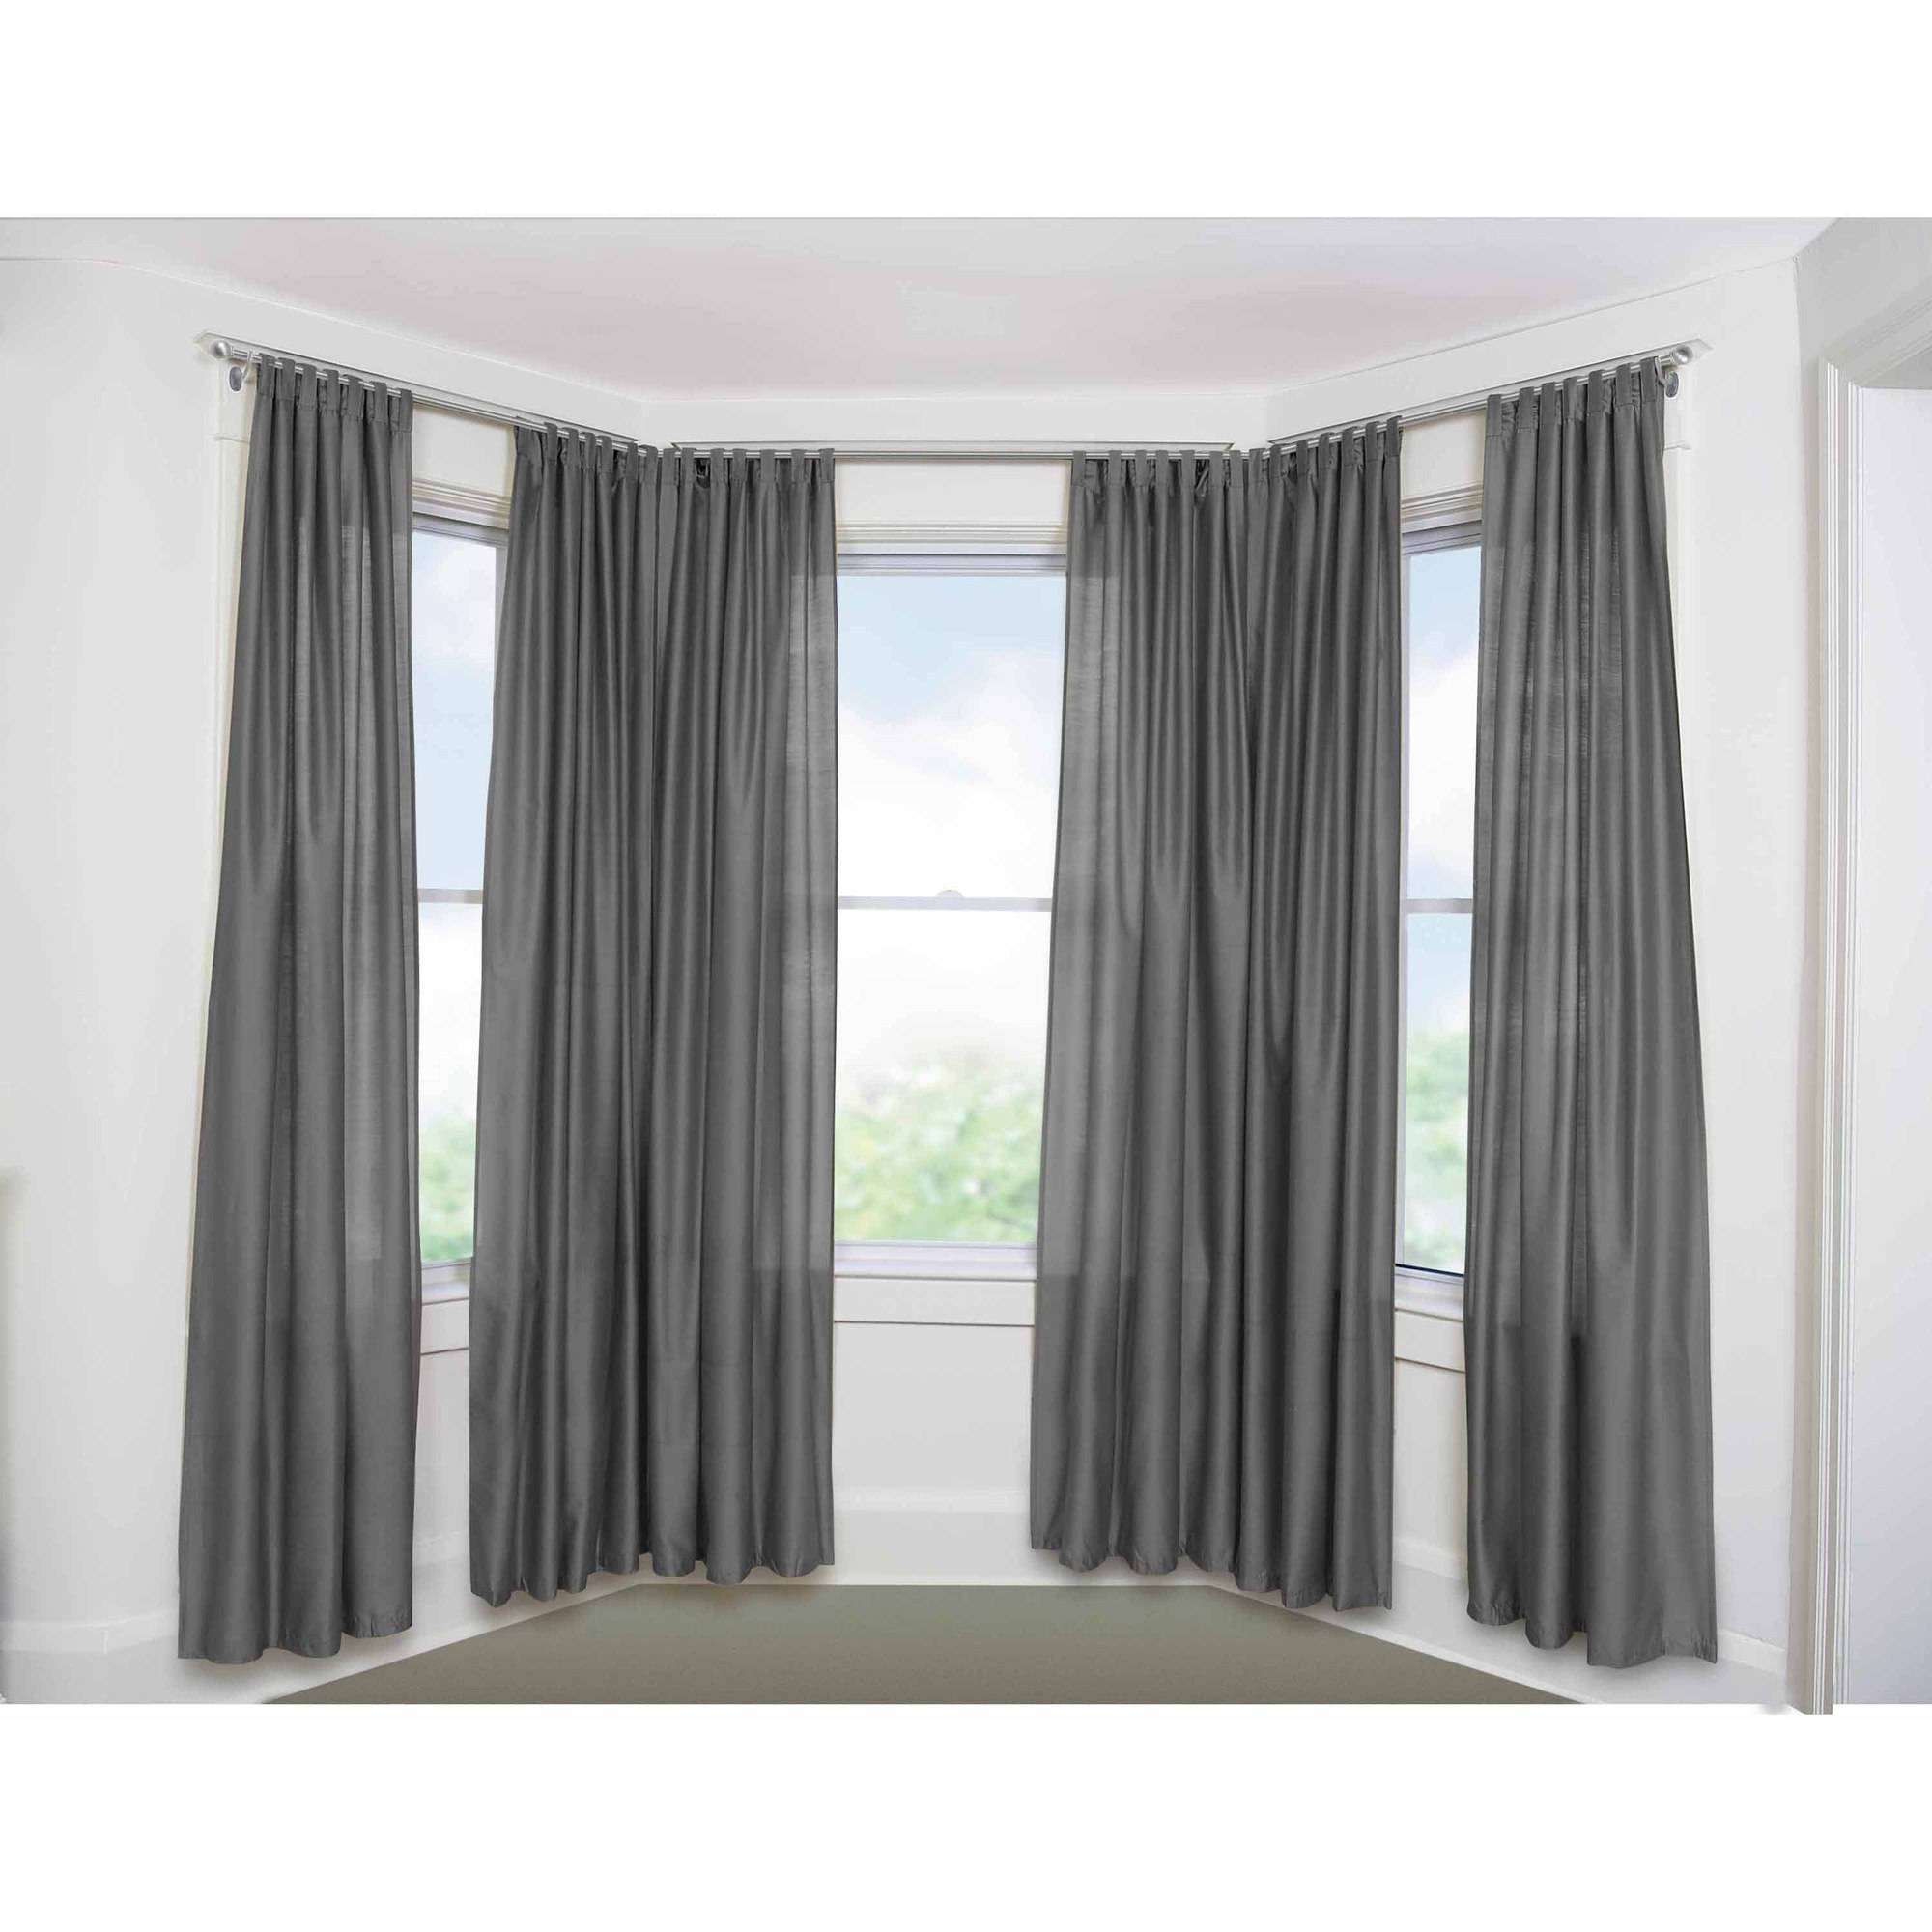 Bay Window Curtain Rod Set 58 Walmart With Bay Windows Curtains (Image 4 of 15)